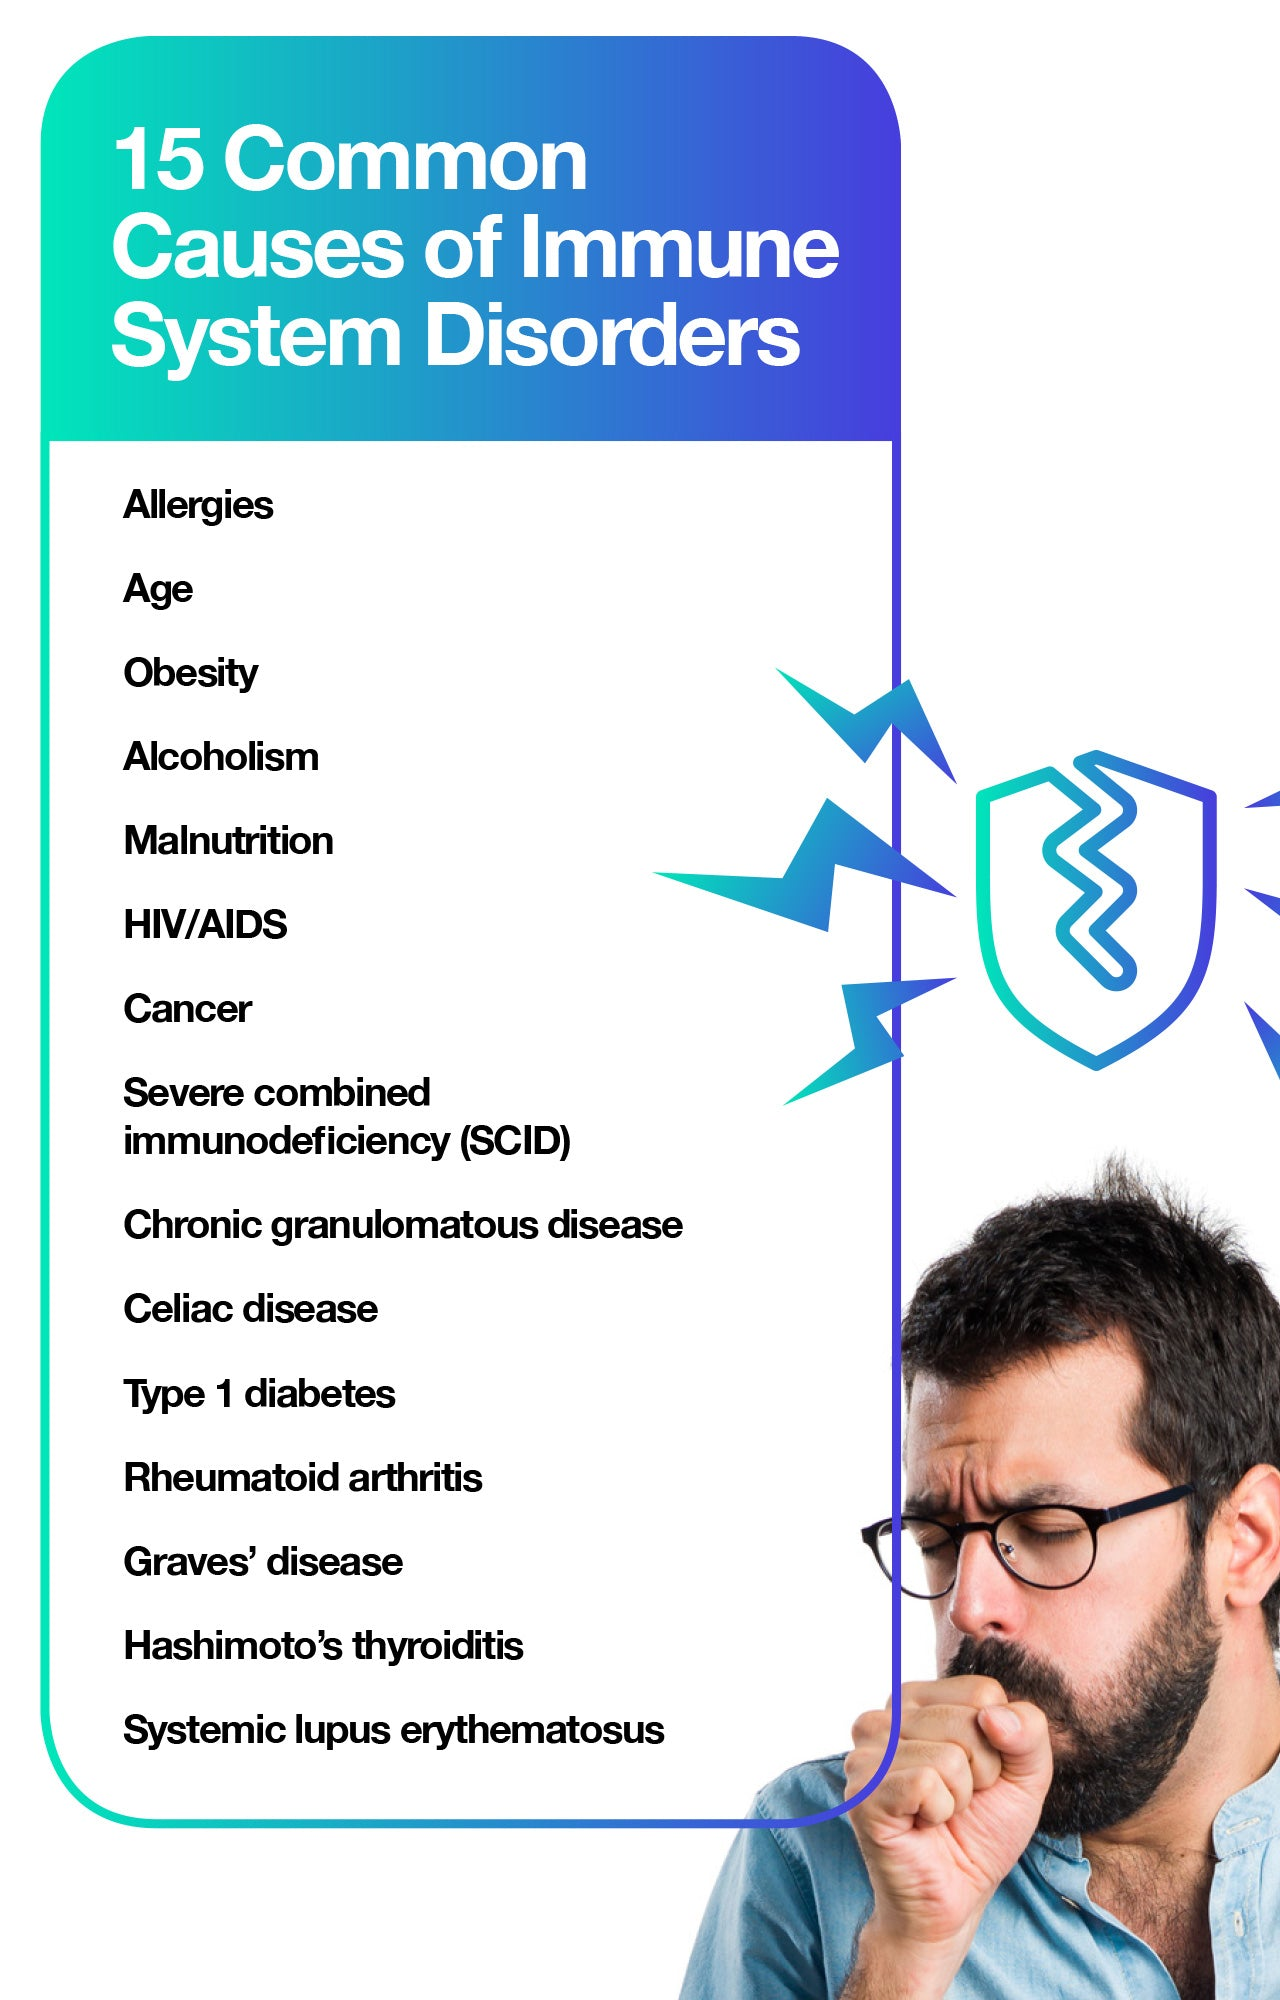 Causes of immune system disorders